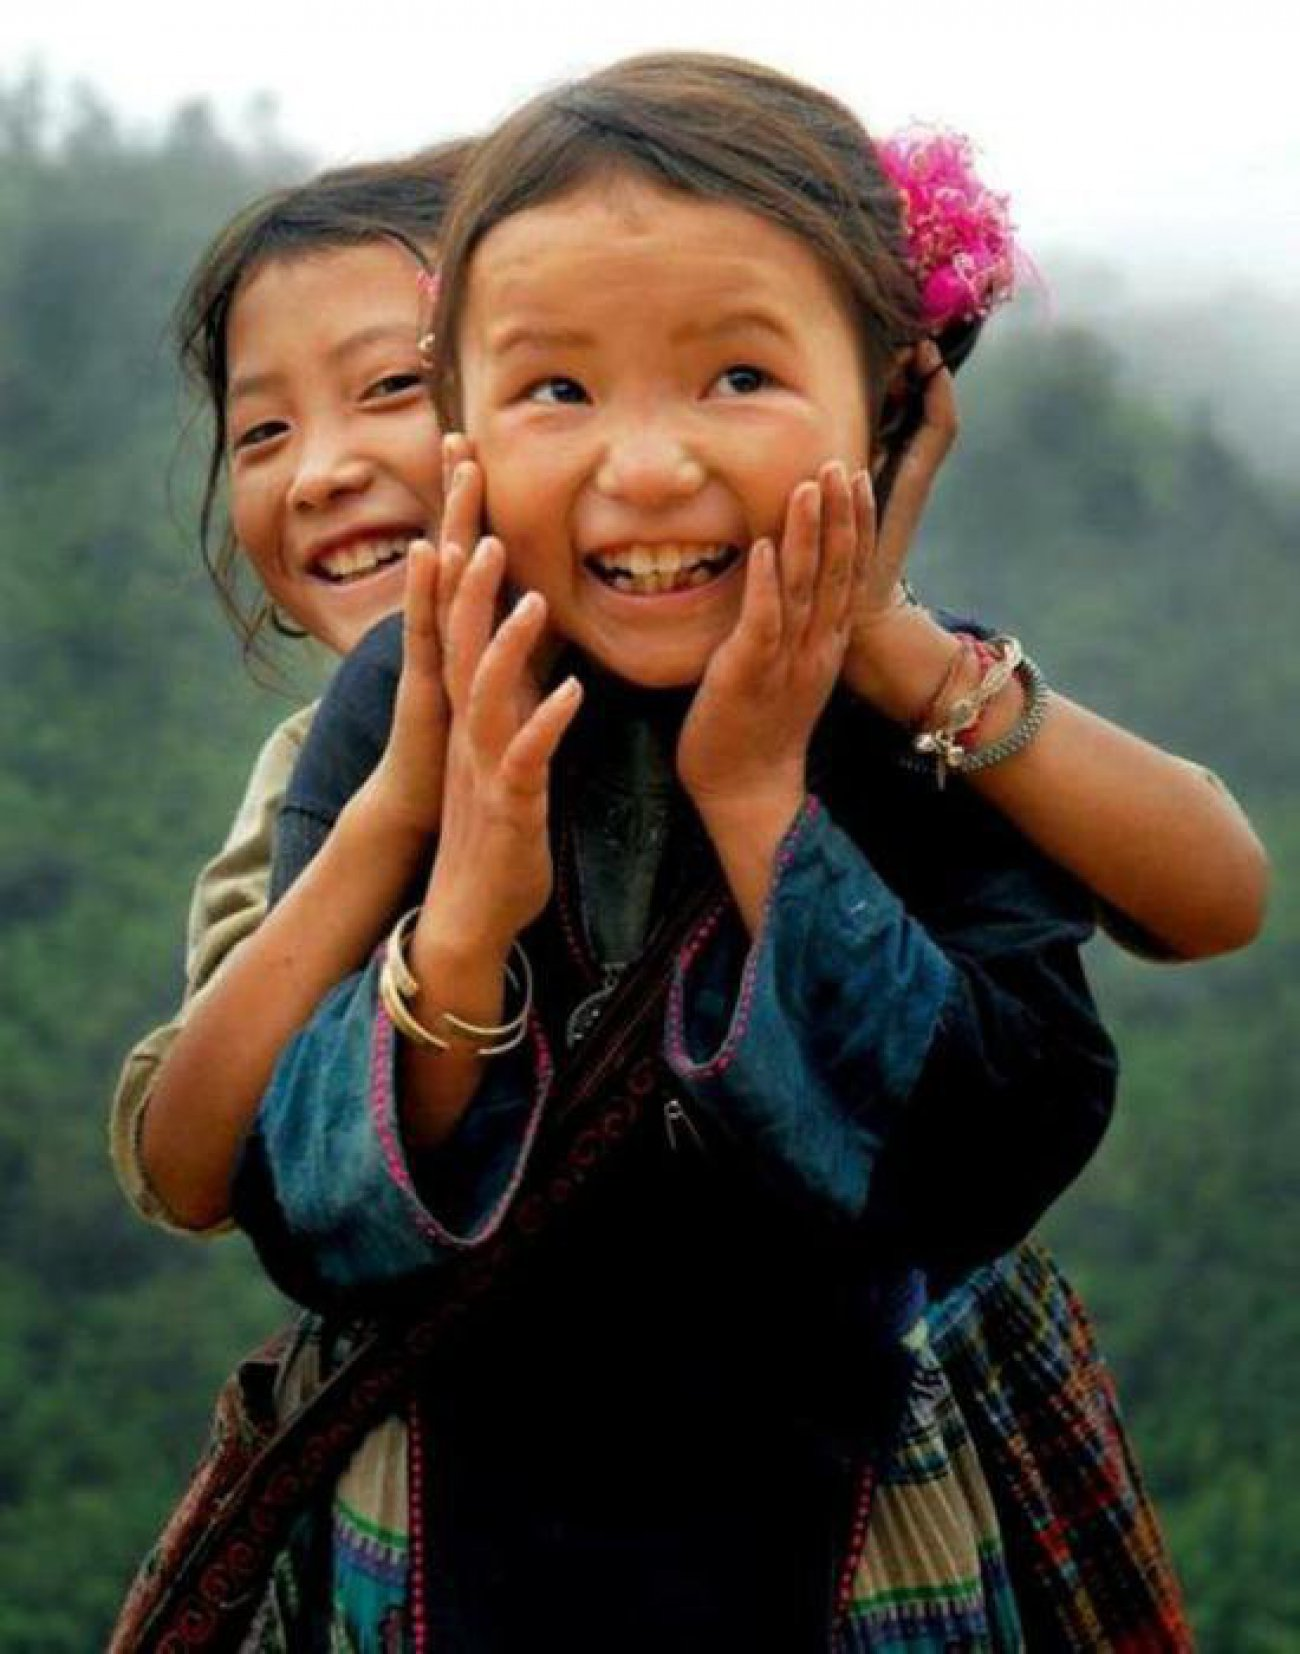 Children Smilling_9